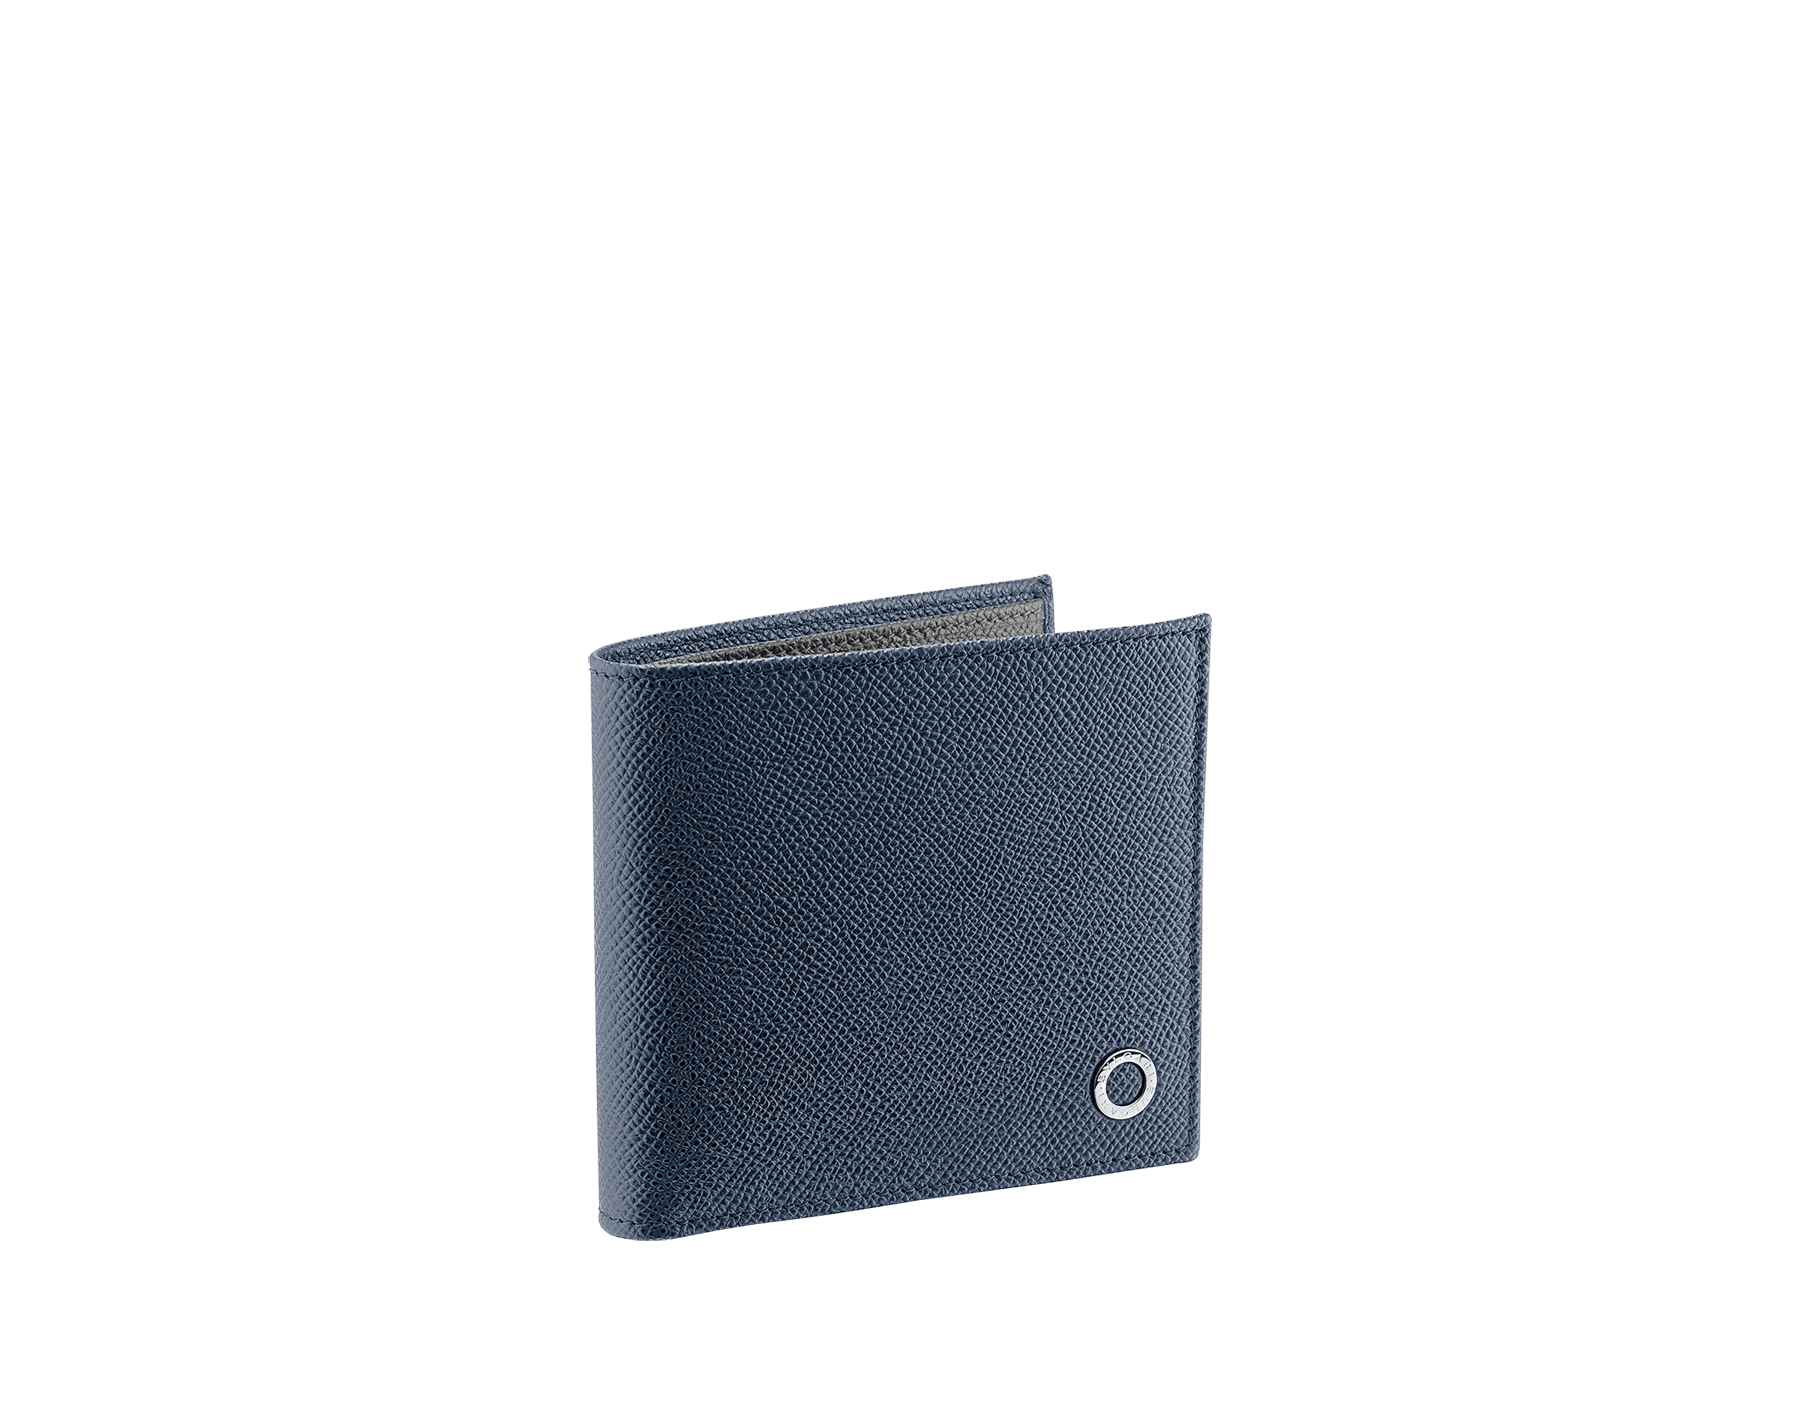 BVLGARI BVLGARI men's wallet in denim sapphire and charcoal diamond grain calf leather and blue slate nappa lining. Iconic logo décor in palladium plated brass. 289112 image 1